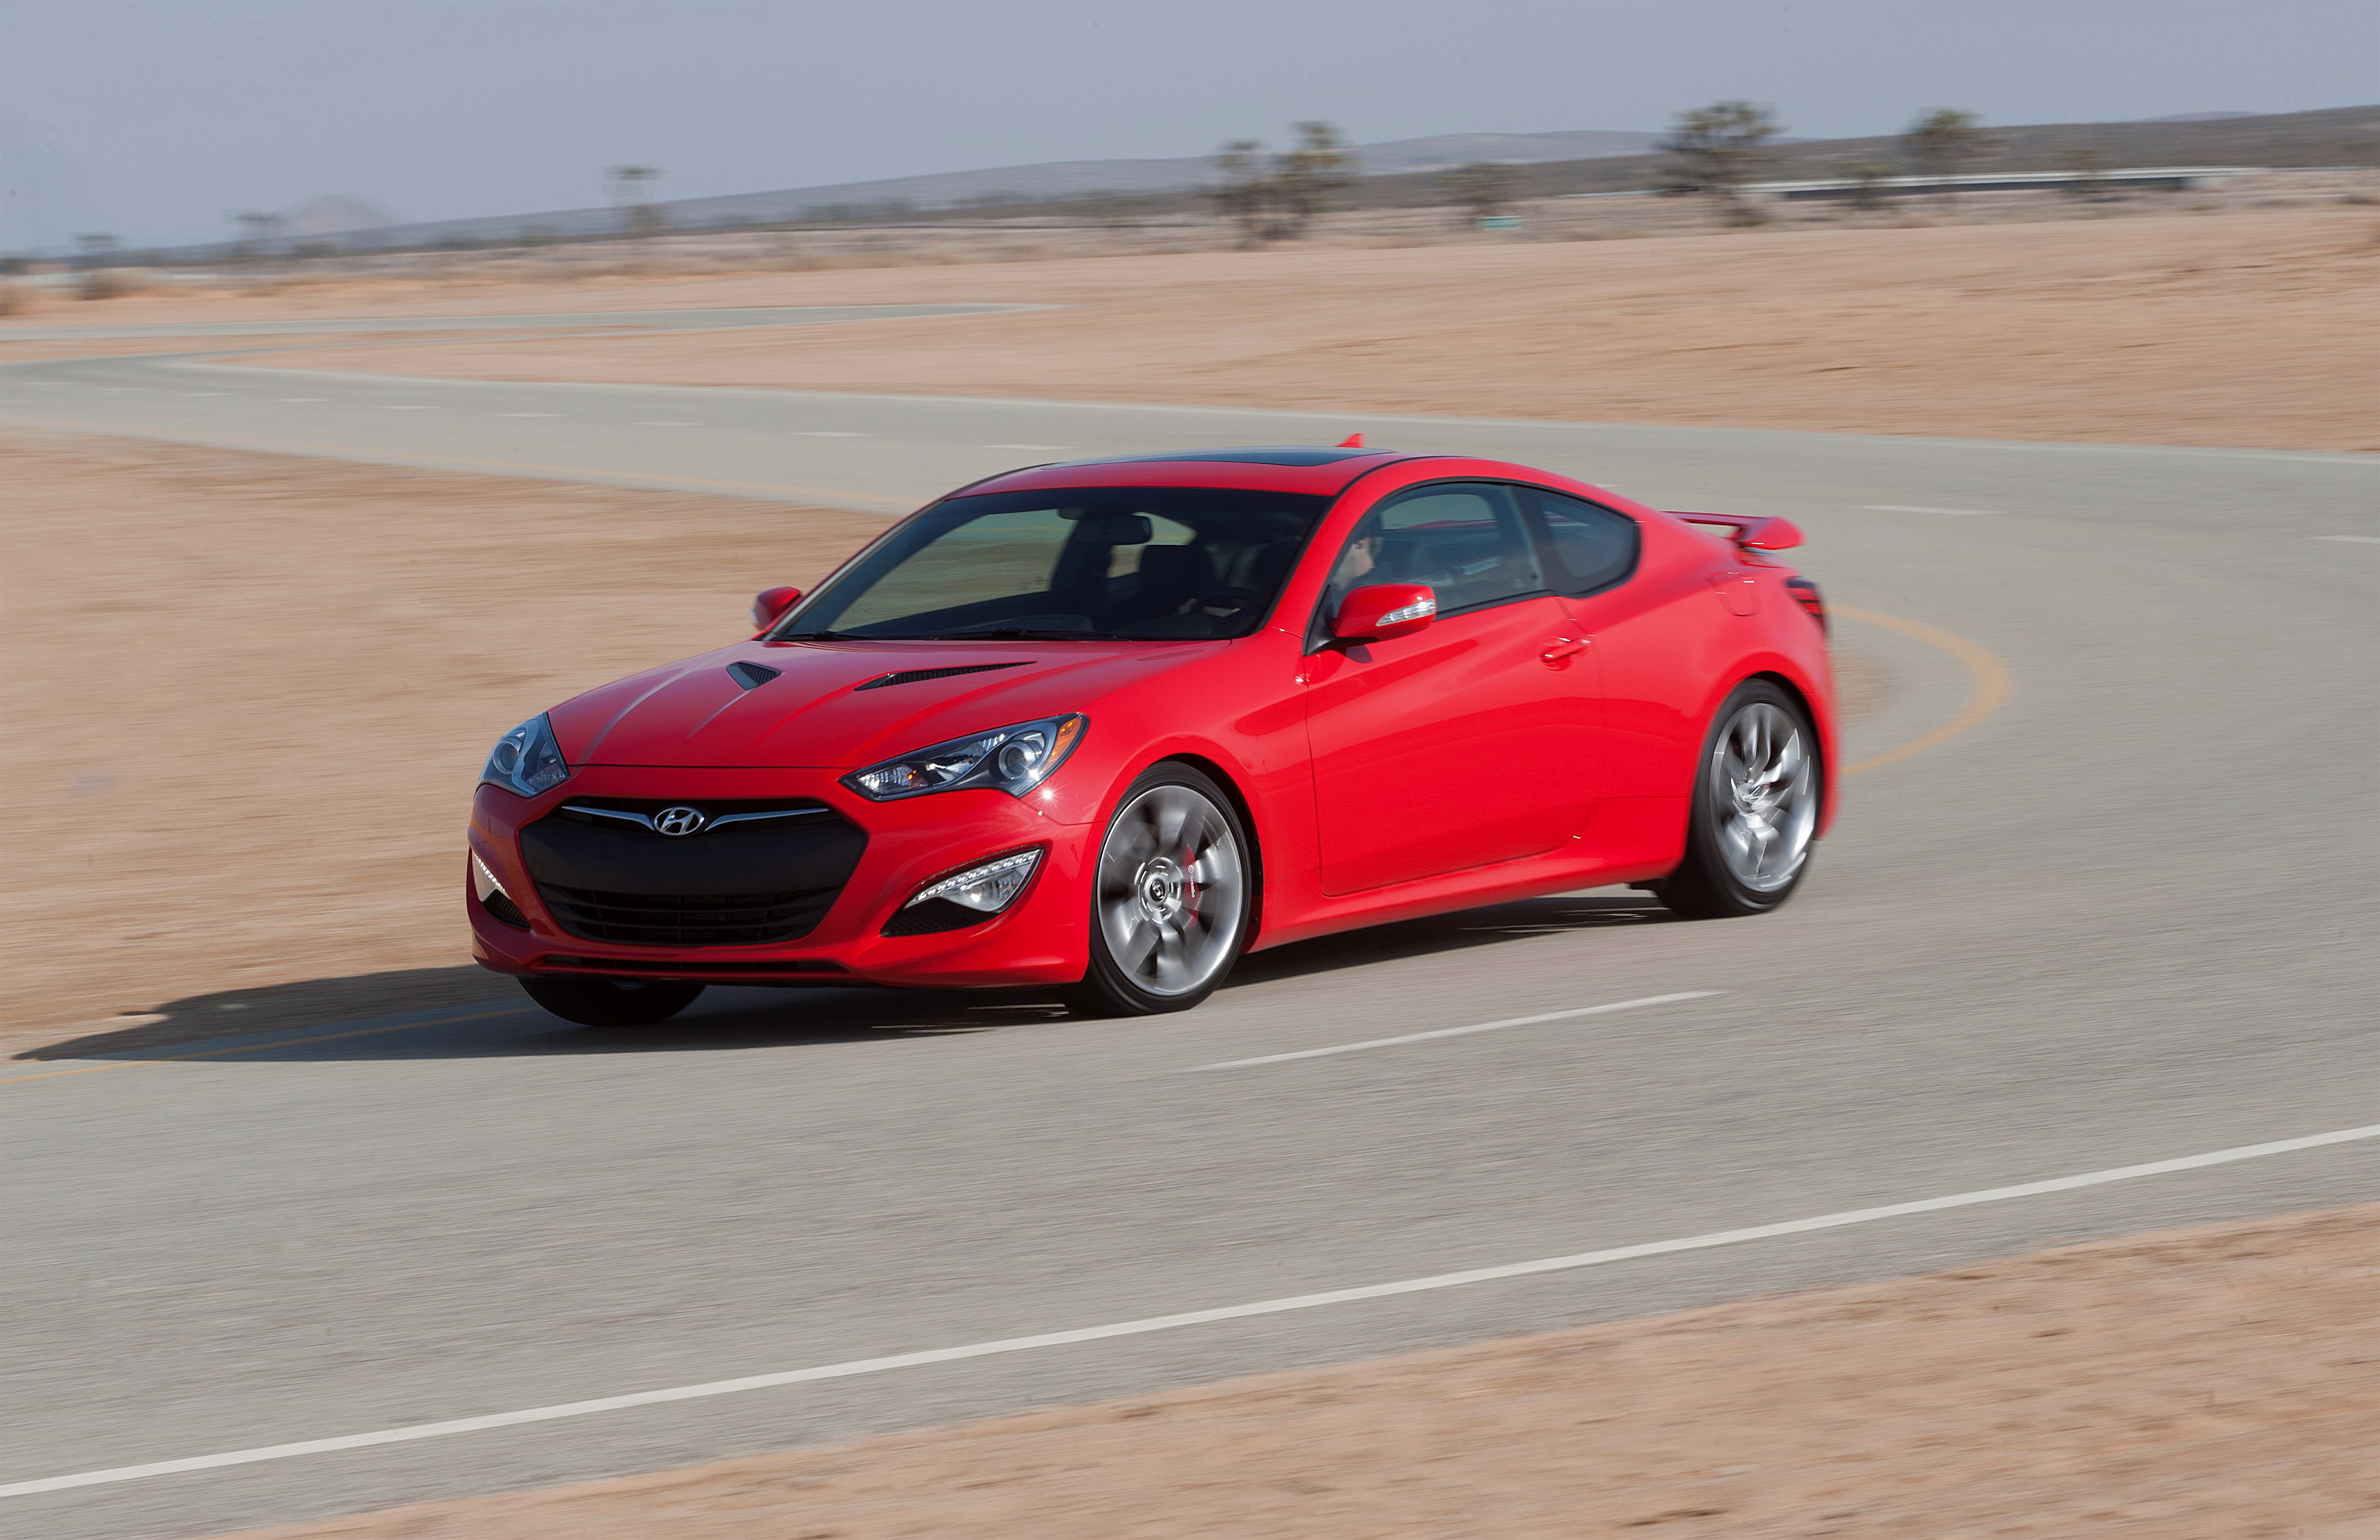 2014 hyundai genesis coupe review gallery 539888 top speed. Black Bedroom Furniture Sets. Home Design Ideas